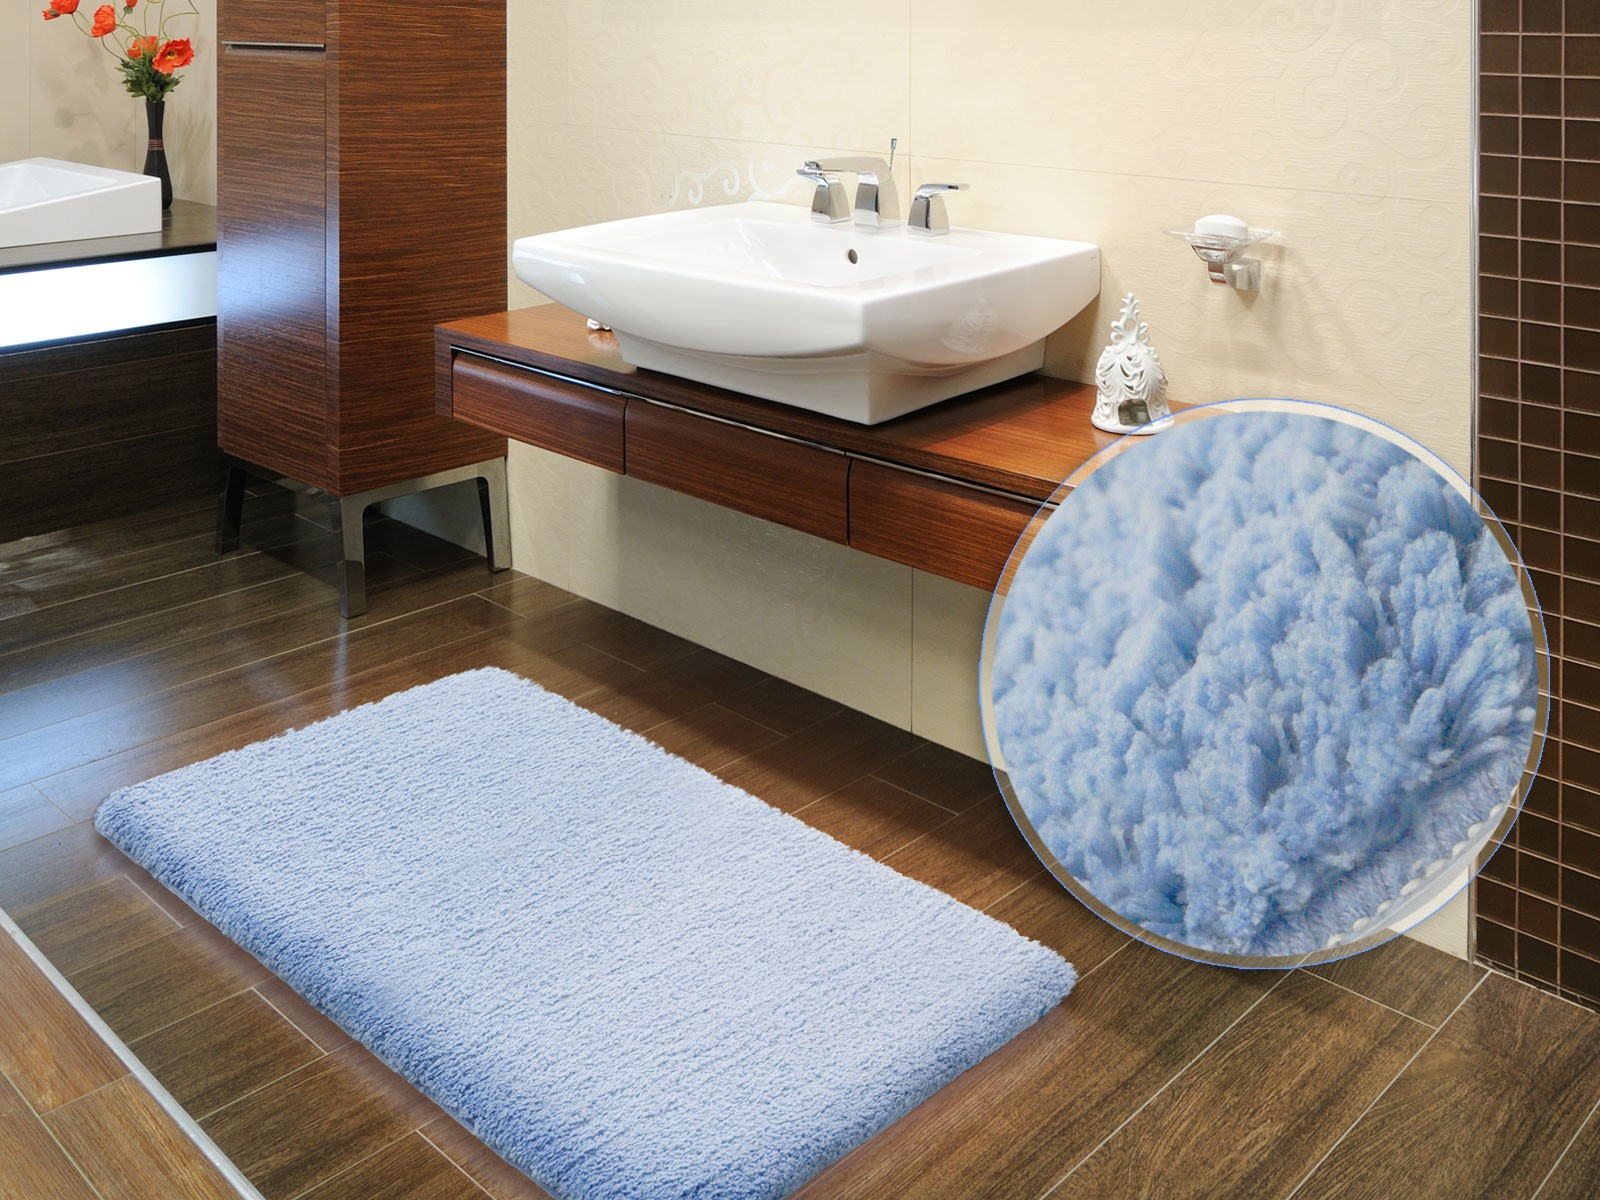 mesmerizing square fluffy bath mat with porcelain floor and bath countertop ideas